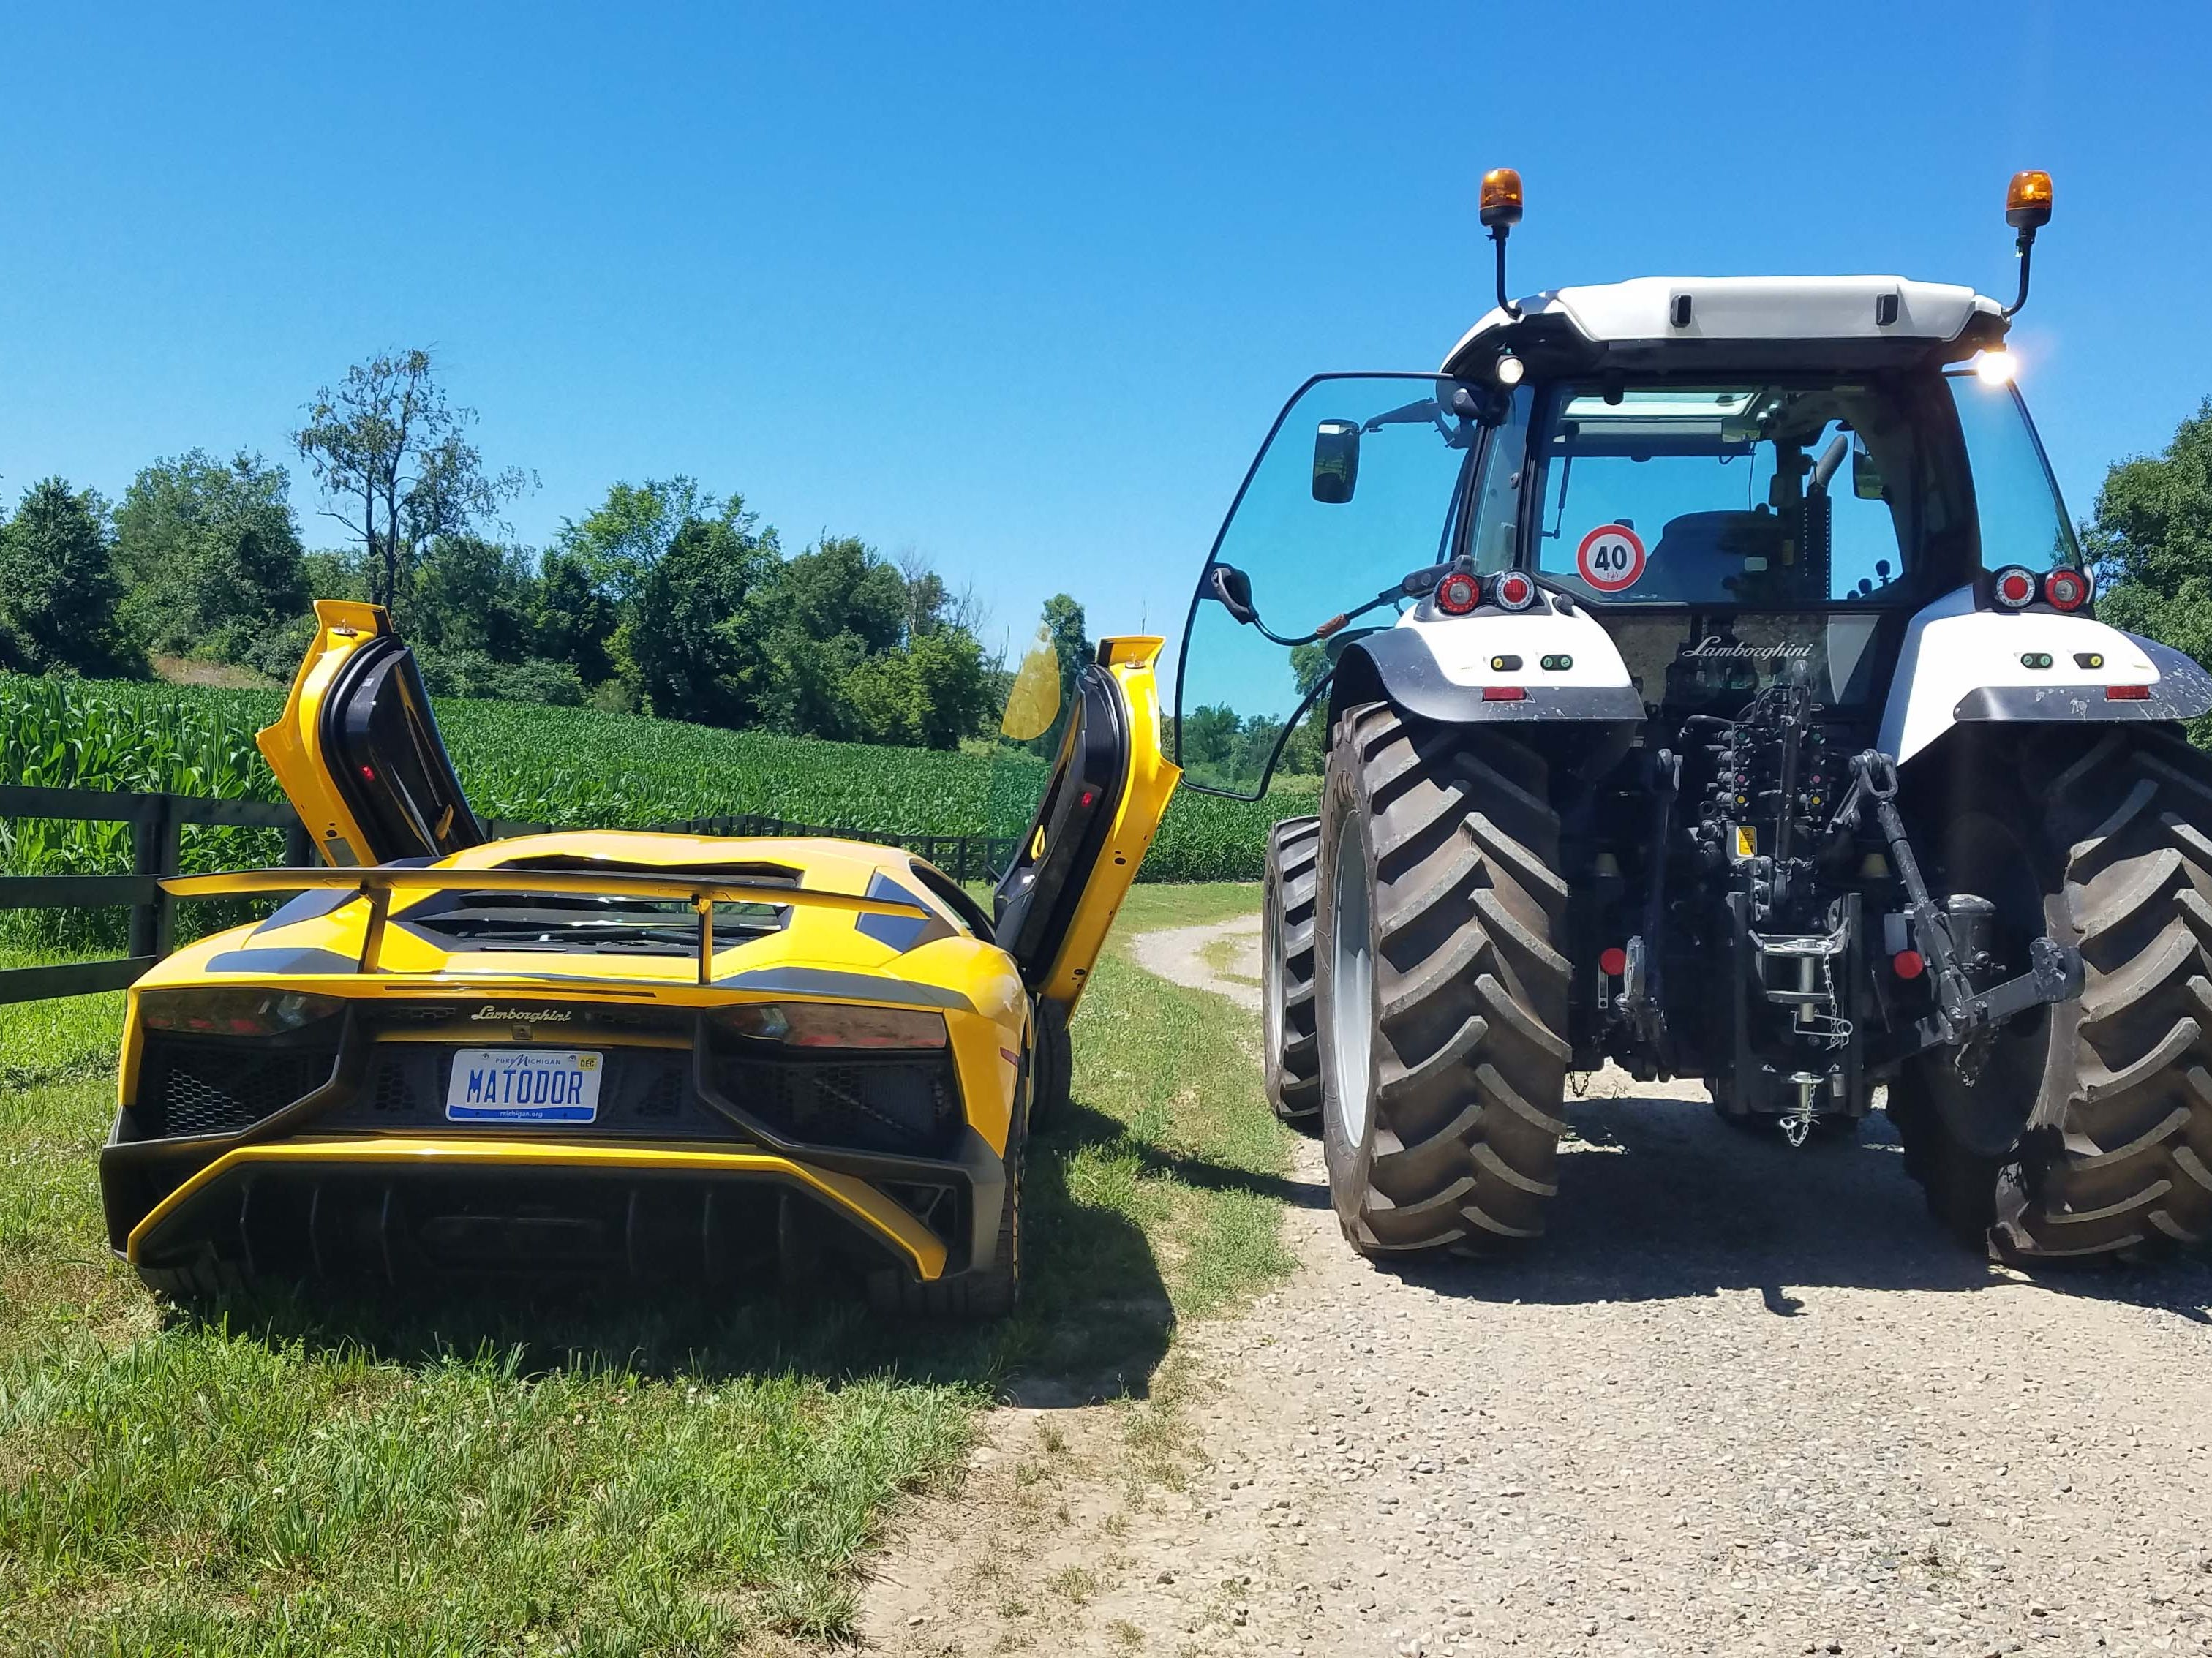 AWD Italians. The Lamborghini Aventador SV tips the scales at about 4,000 pounds; the Lamborghini Nitro tractor weighs in at 11,000 pounds.